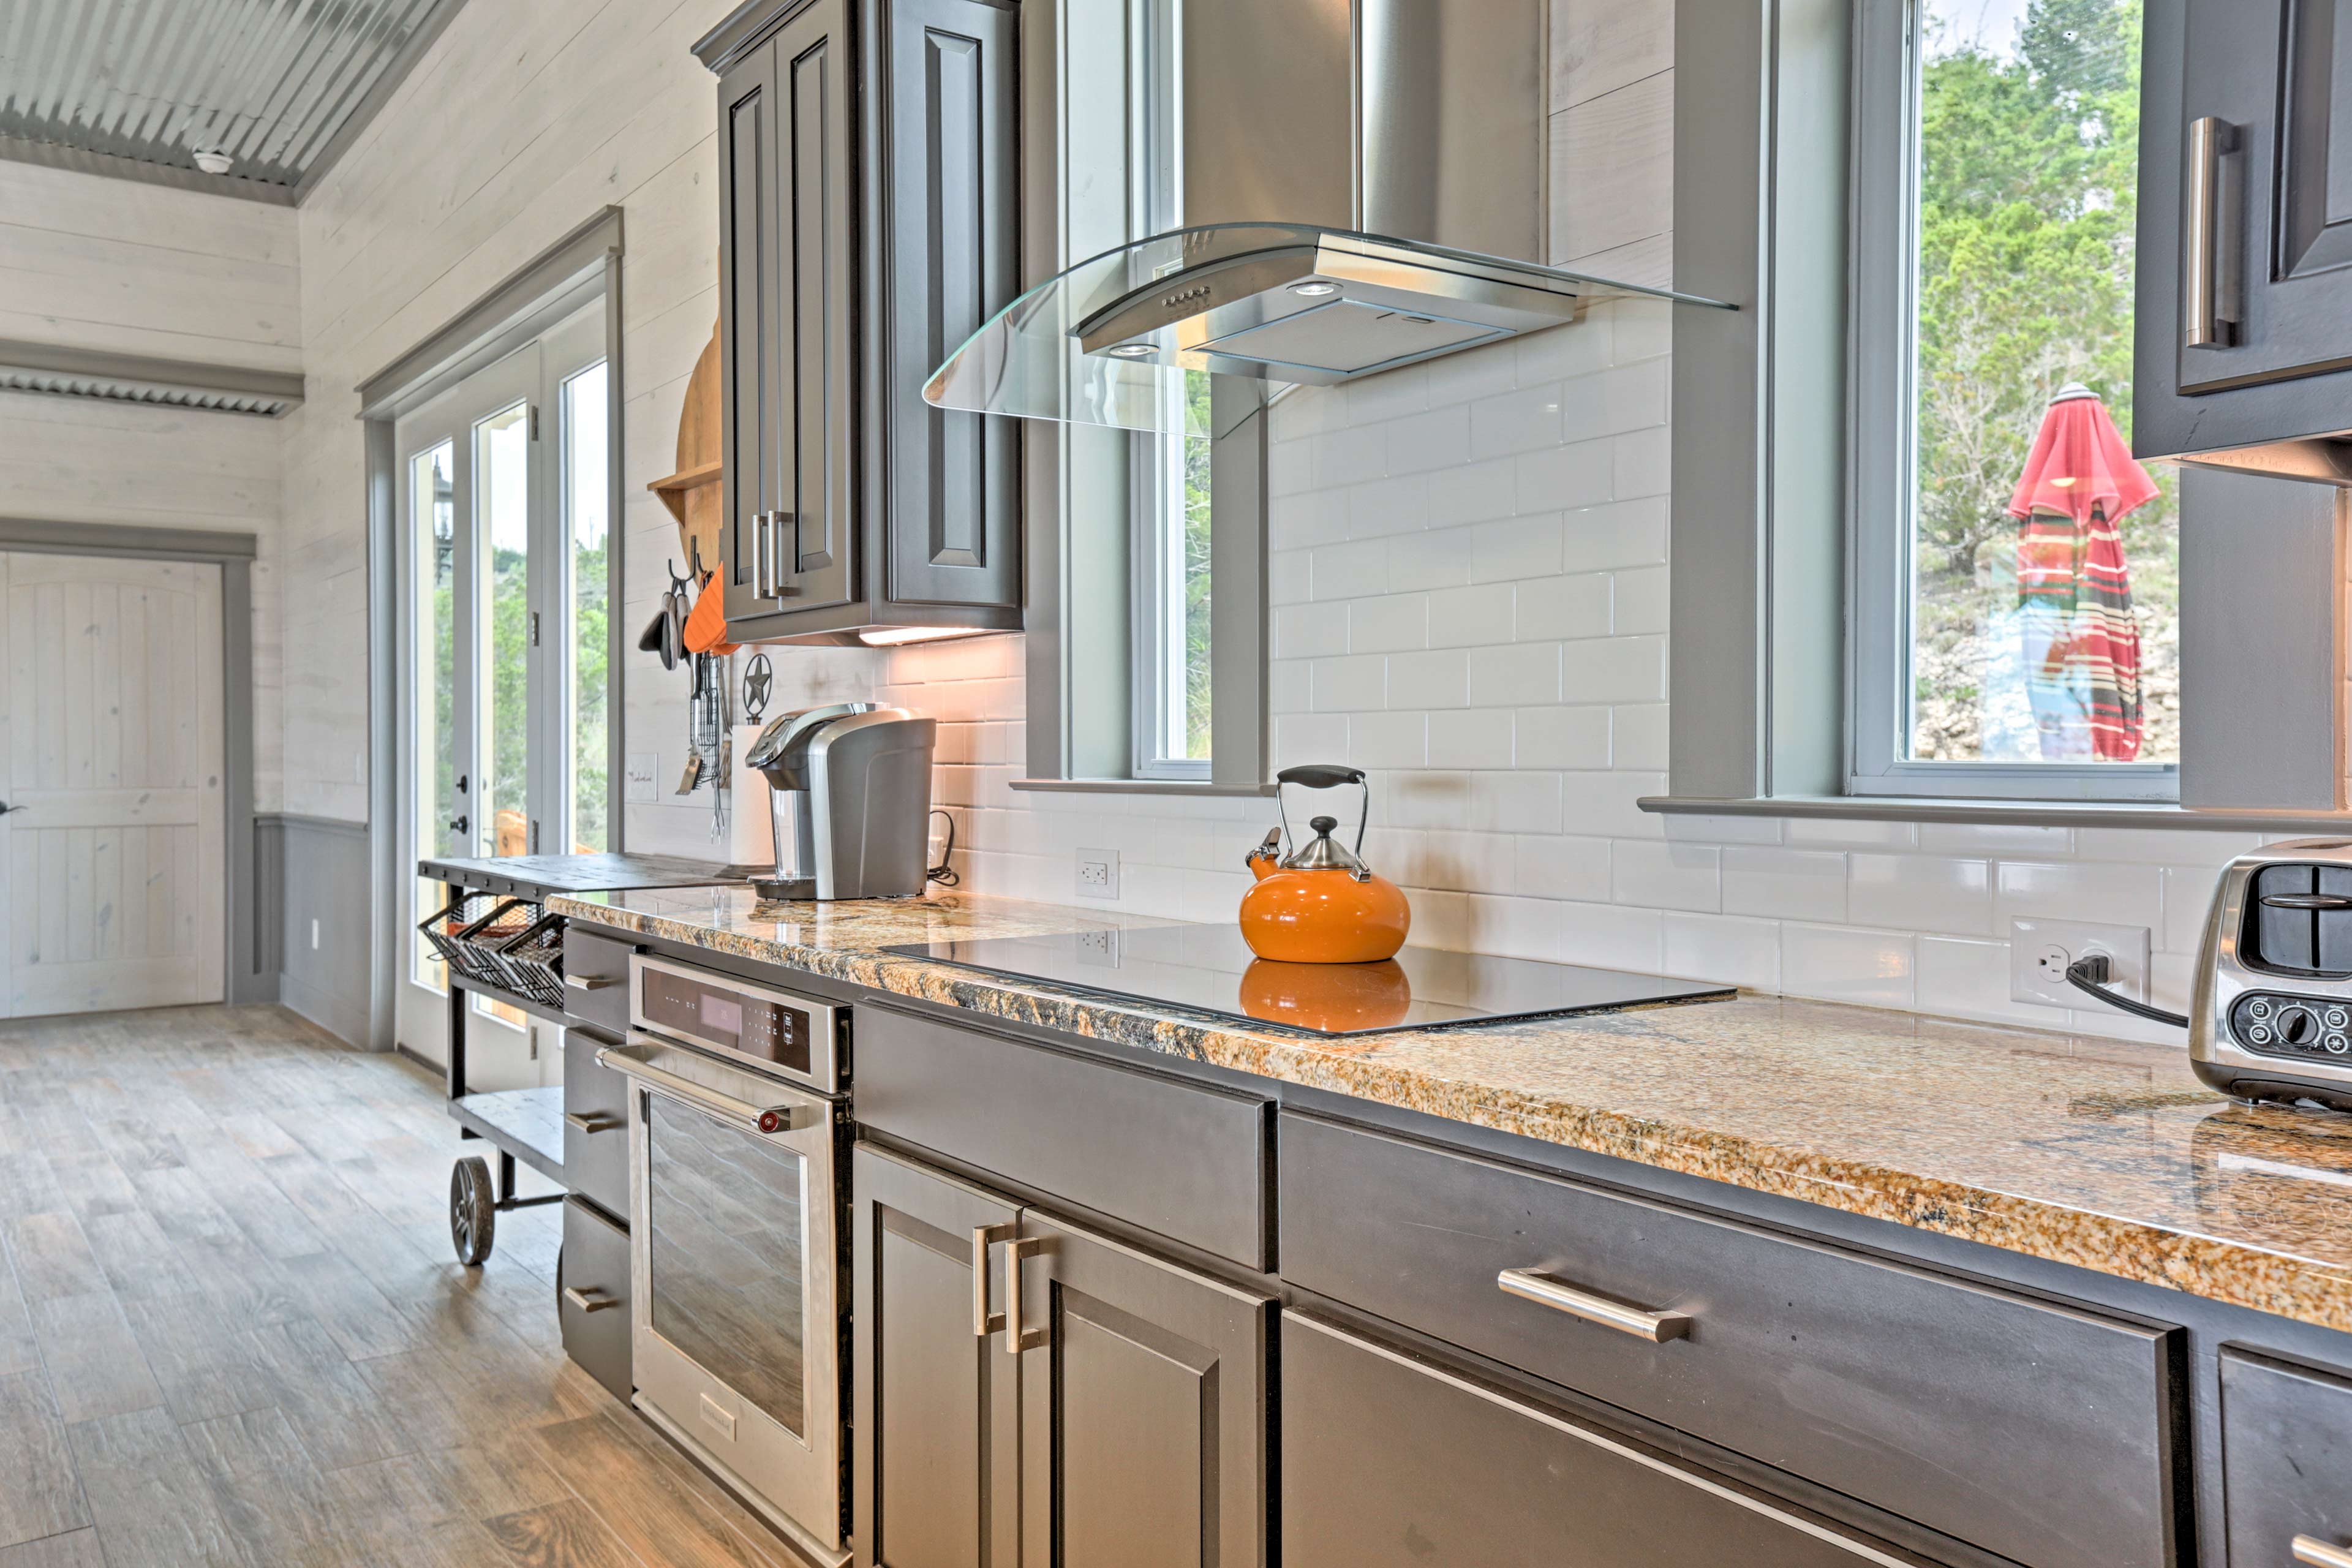 Stainless steel appliances make cooking in this kitchen a real treat!